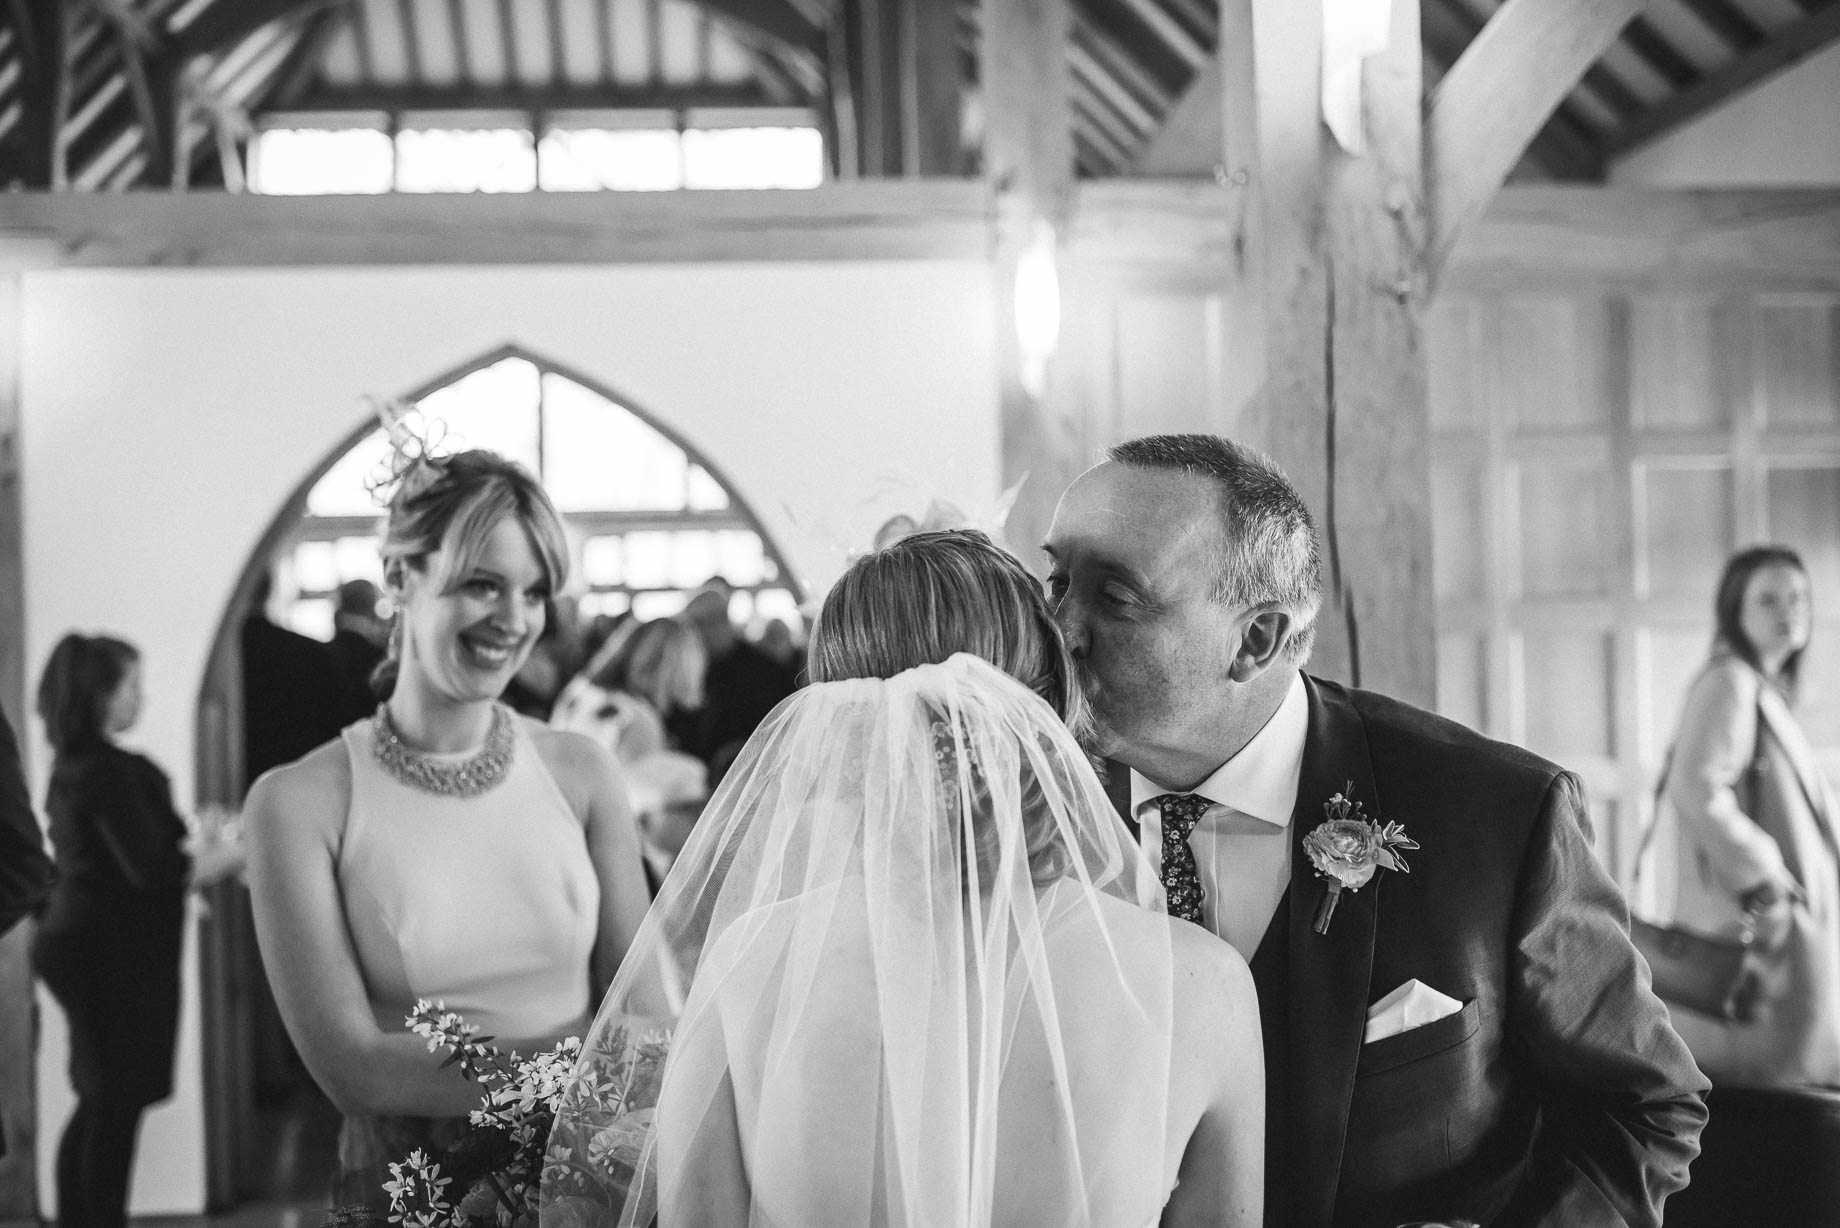 Rivervale Barn wedding photography by Guy Collier - Claire and Simon (66 of 133)